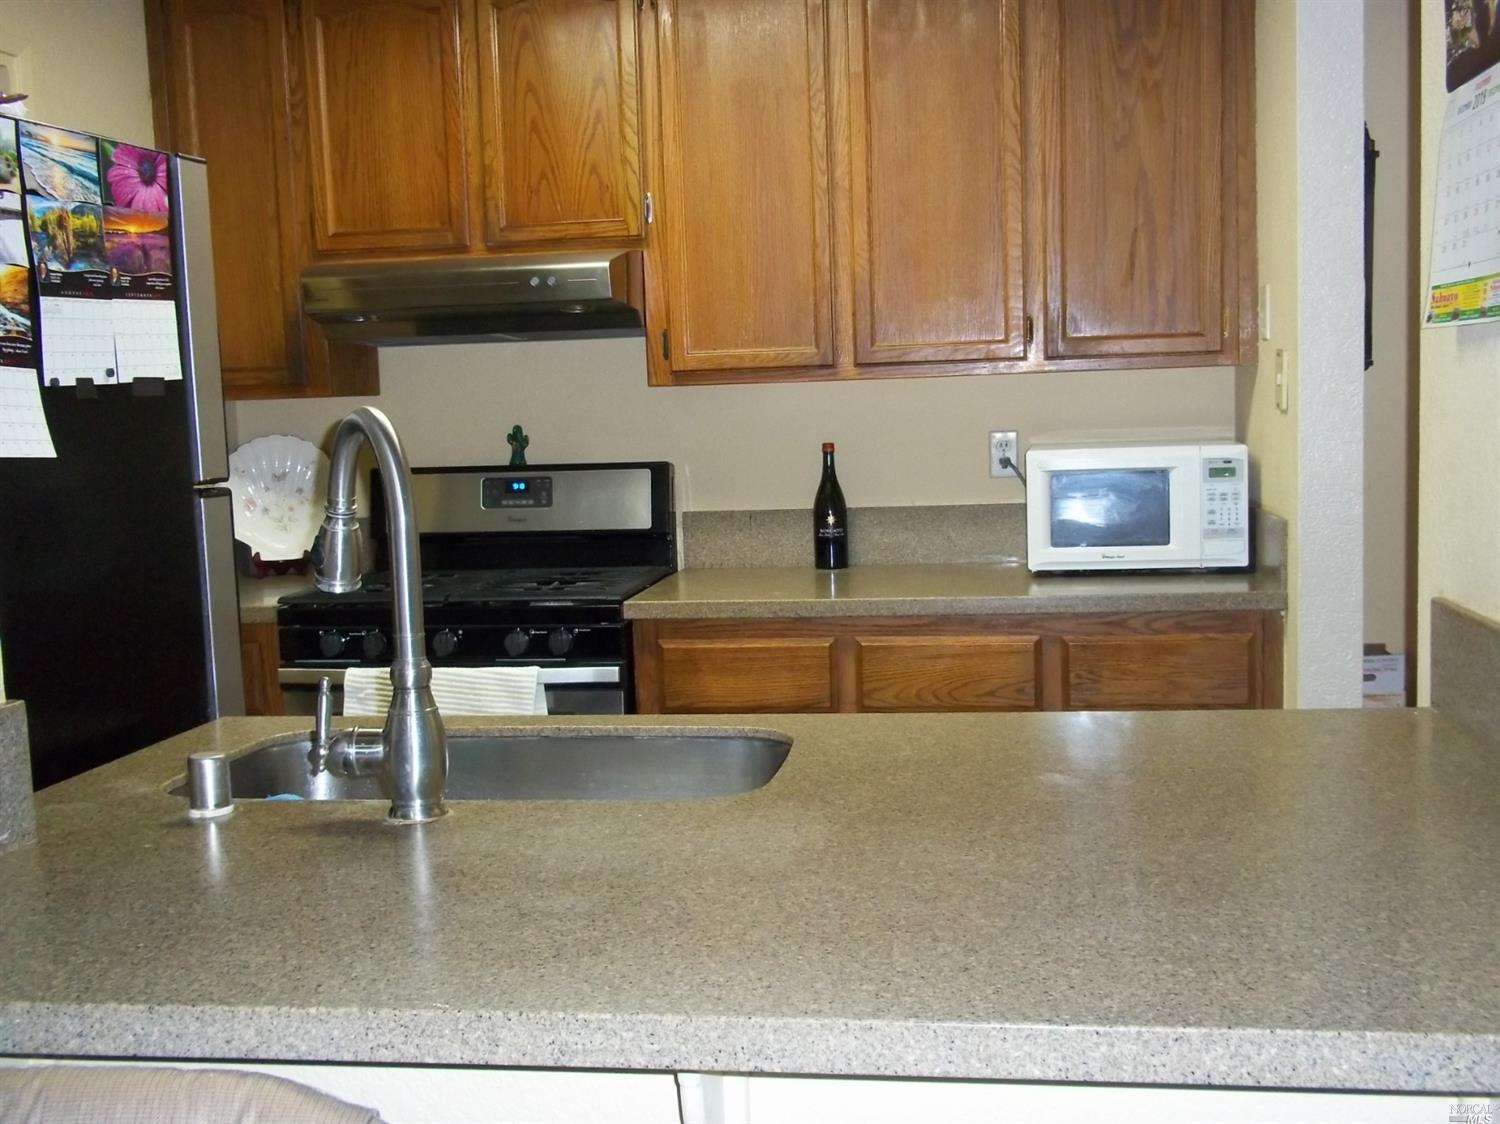 Fantastic condo in Move in condition! 3 bedrooms and 2 full baths all on a single level. you don't f